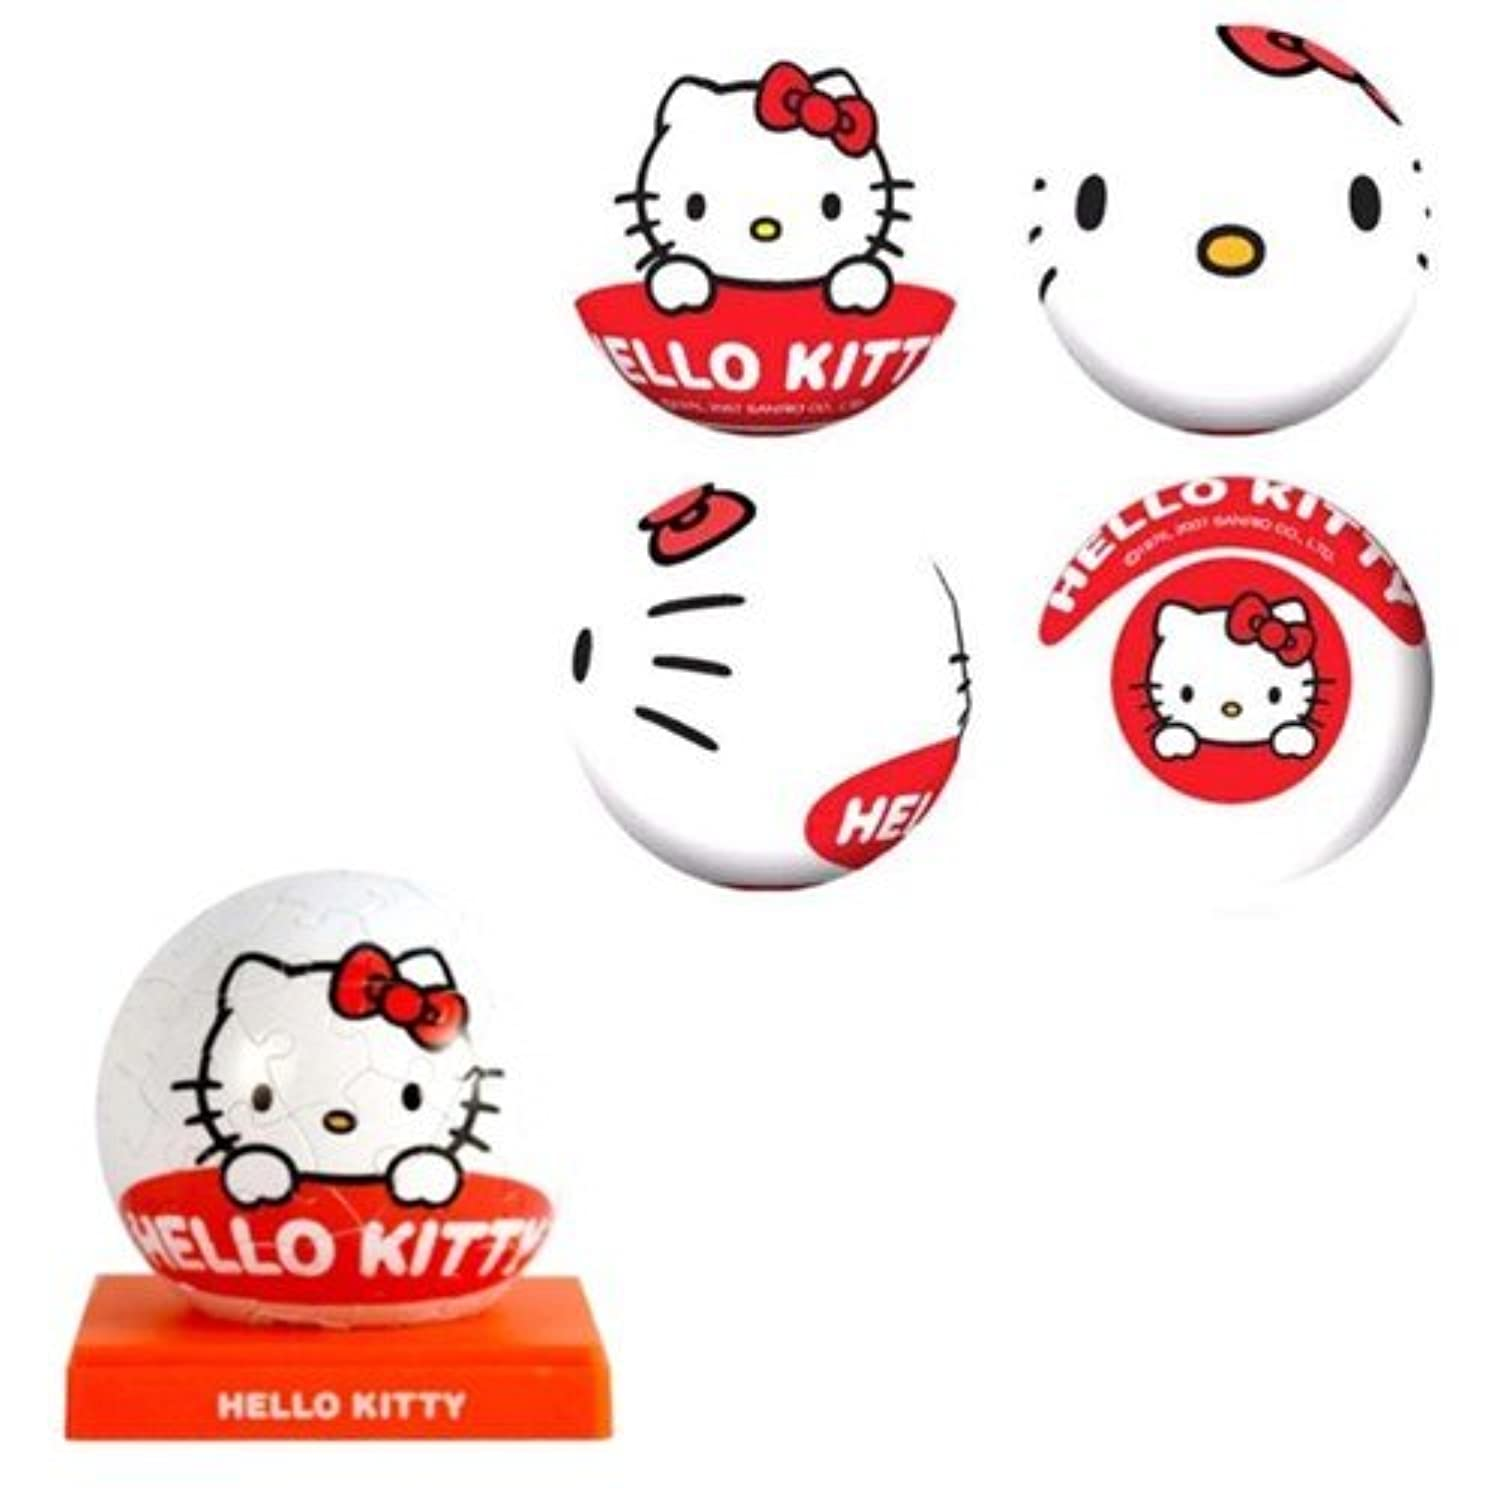 3d Puzzle - 3inch Hello Kitty (Kitty face)